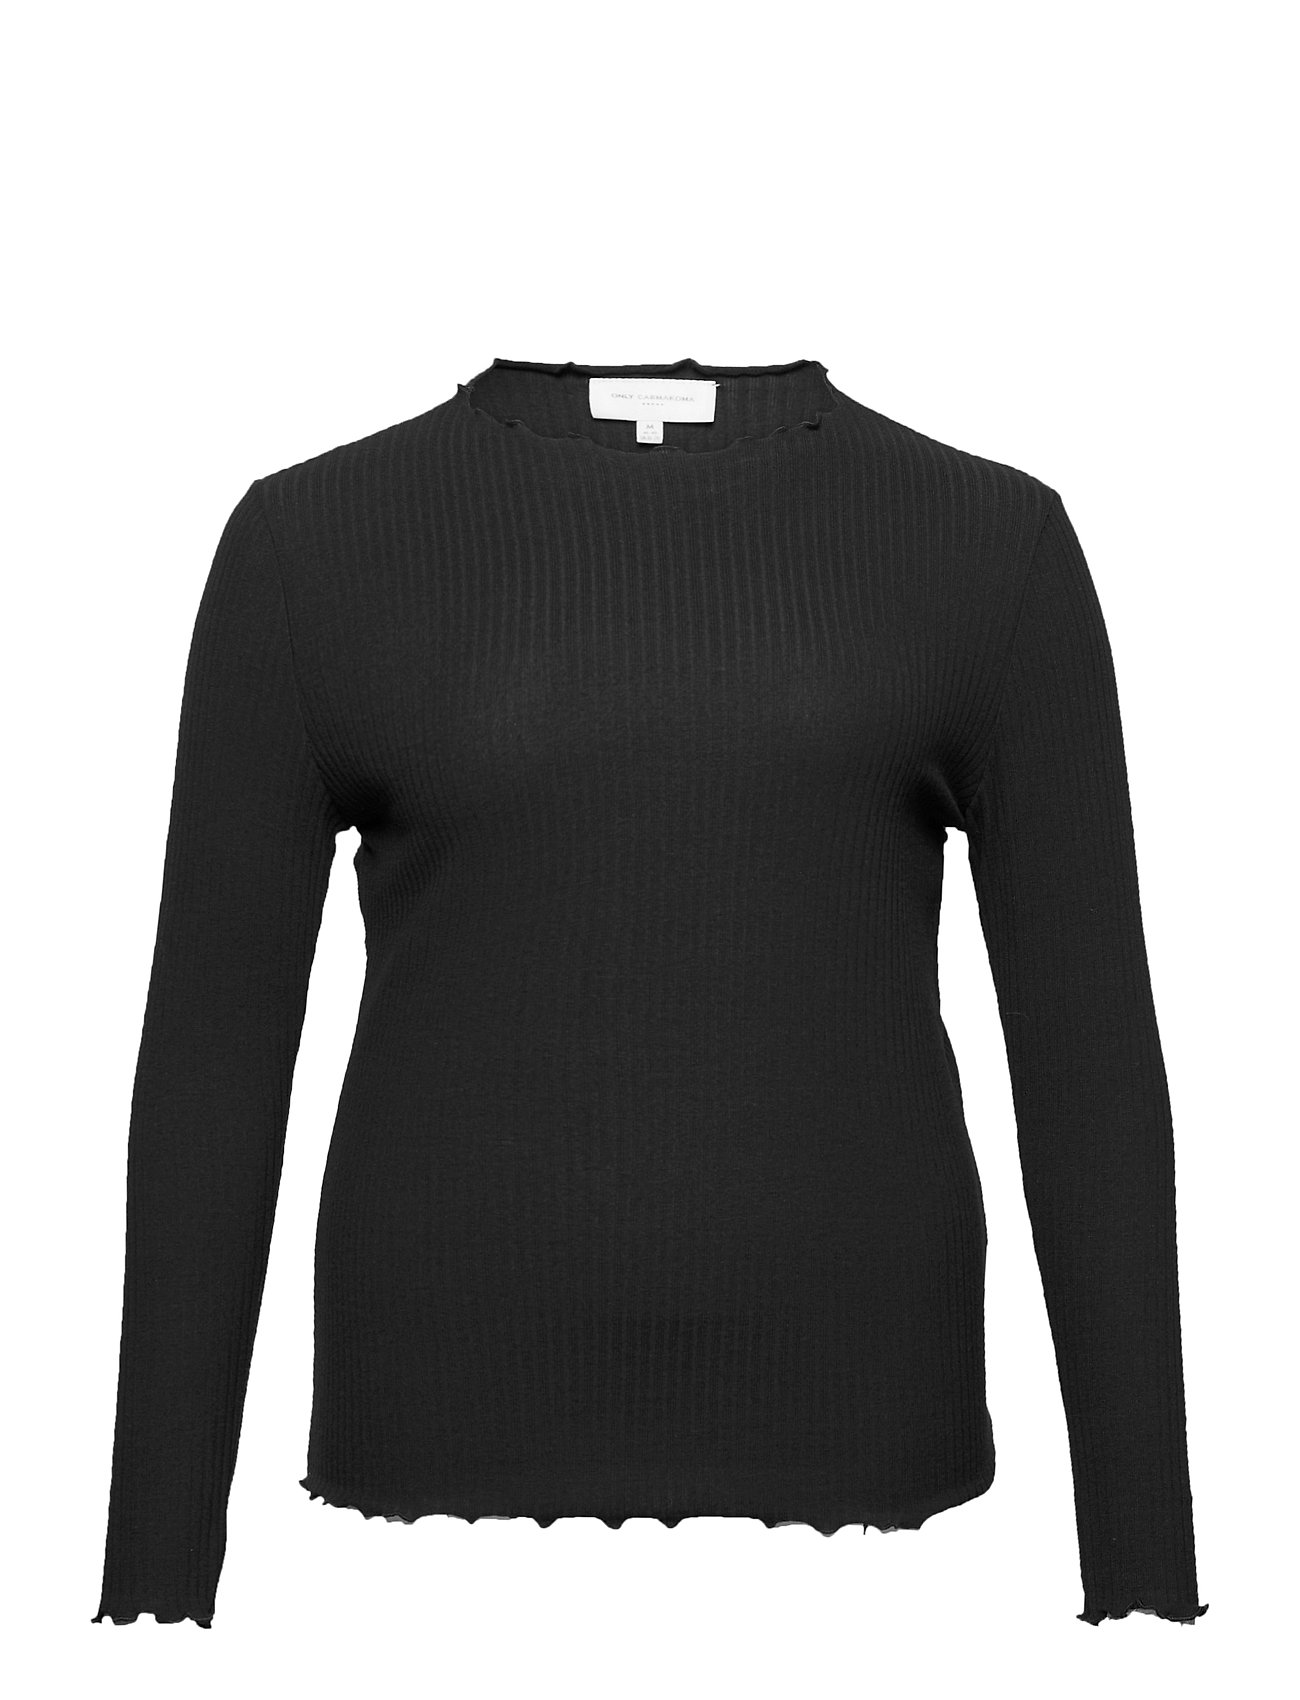 Image of Carally Ls High Neck Top Ess Langærmet T-shirt Sort ONLY Carmakoma (3456992669)